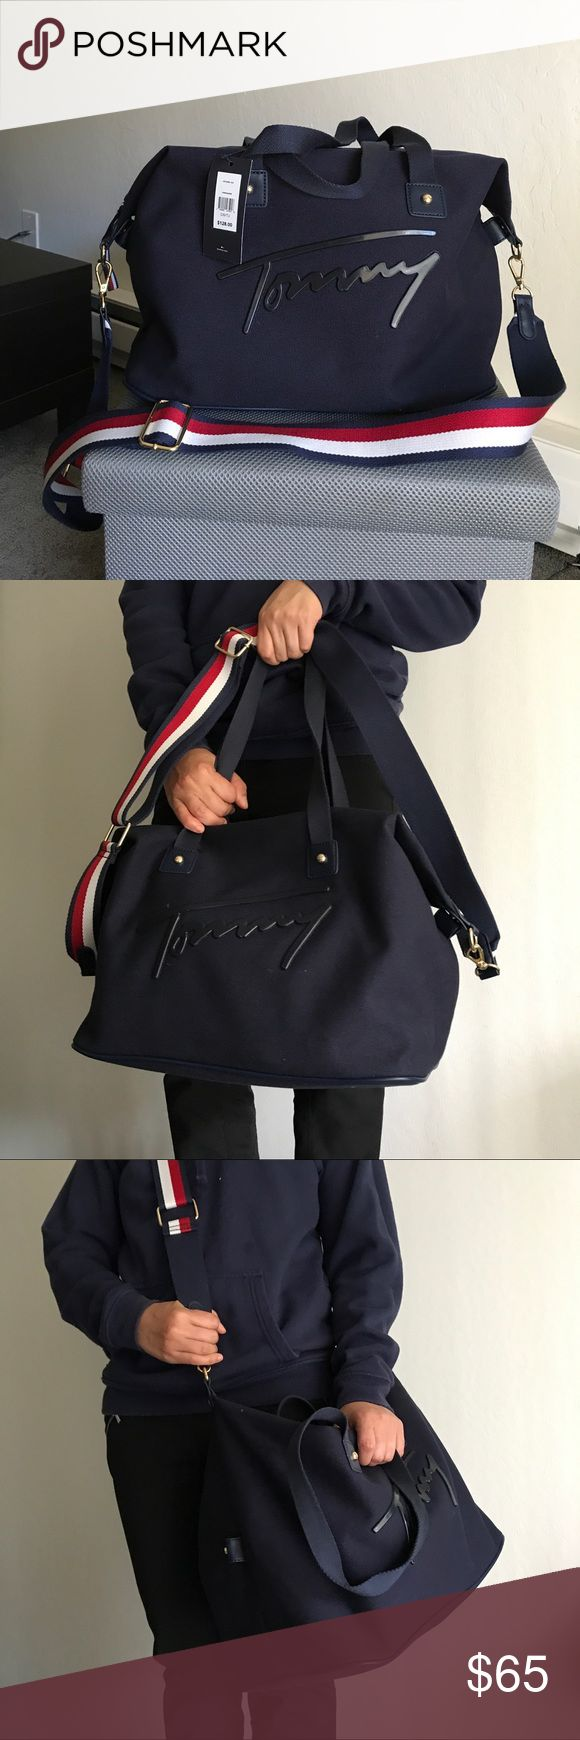 Tommy Hilfiger Duffle Weekender Gym Travel Bag 100% Authentic Tommy Hilfiger. In classic Tommy Hilfiger navy blue, red, and white colors. Unisex. Has gold colored hardware. Perfect for travel, gym, or weekend getaways. Tommy Hilfiger Bags